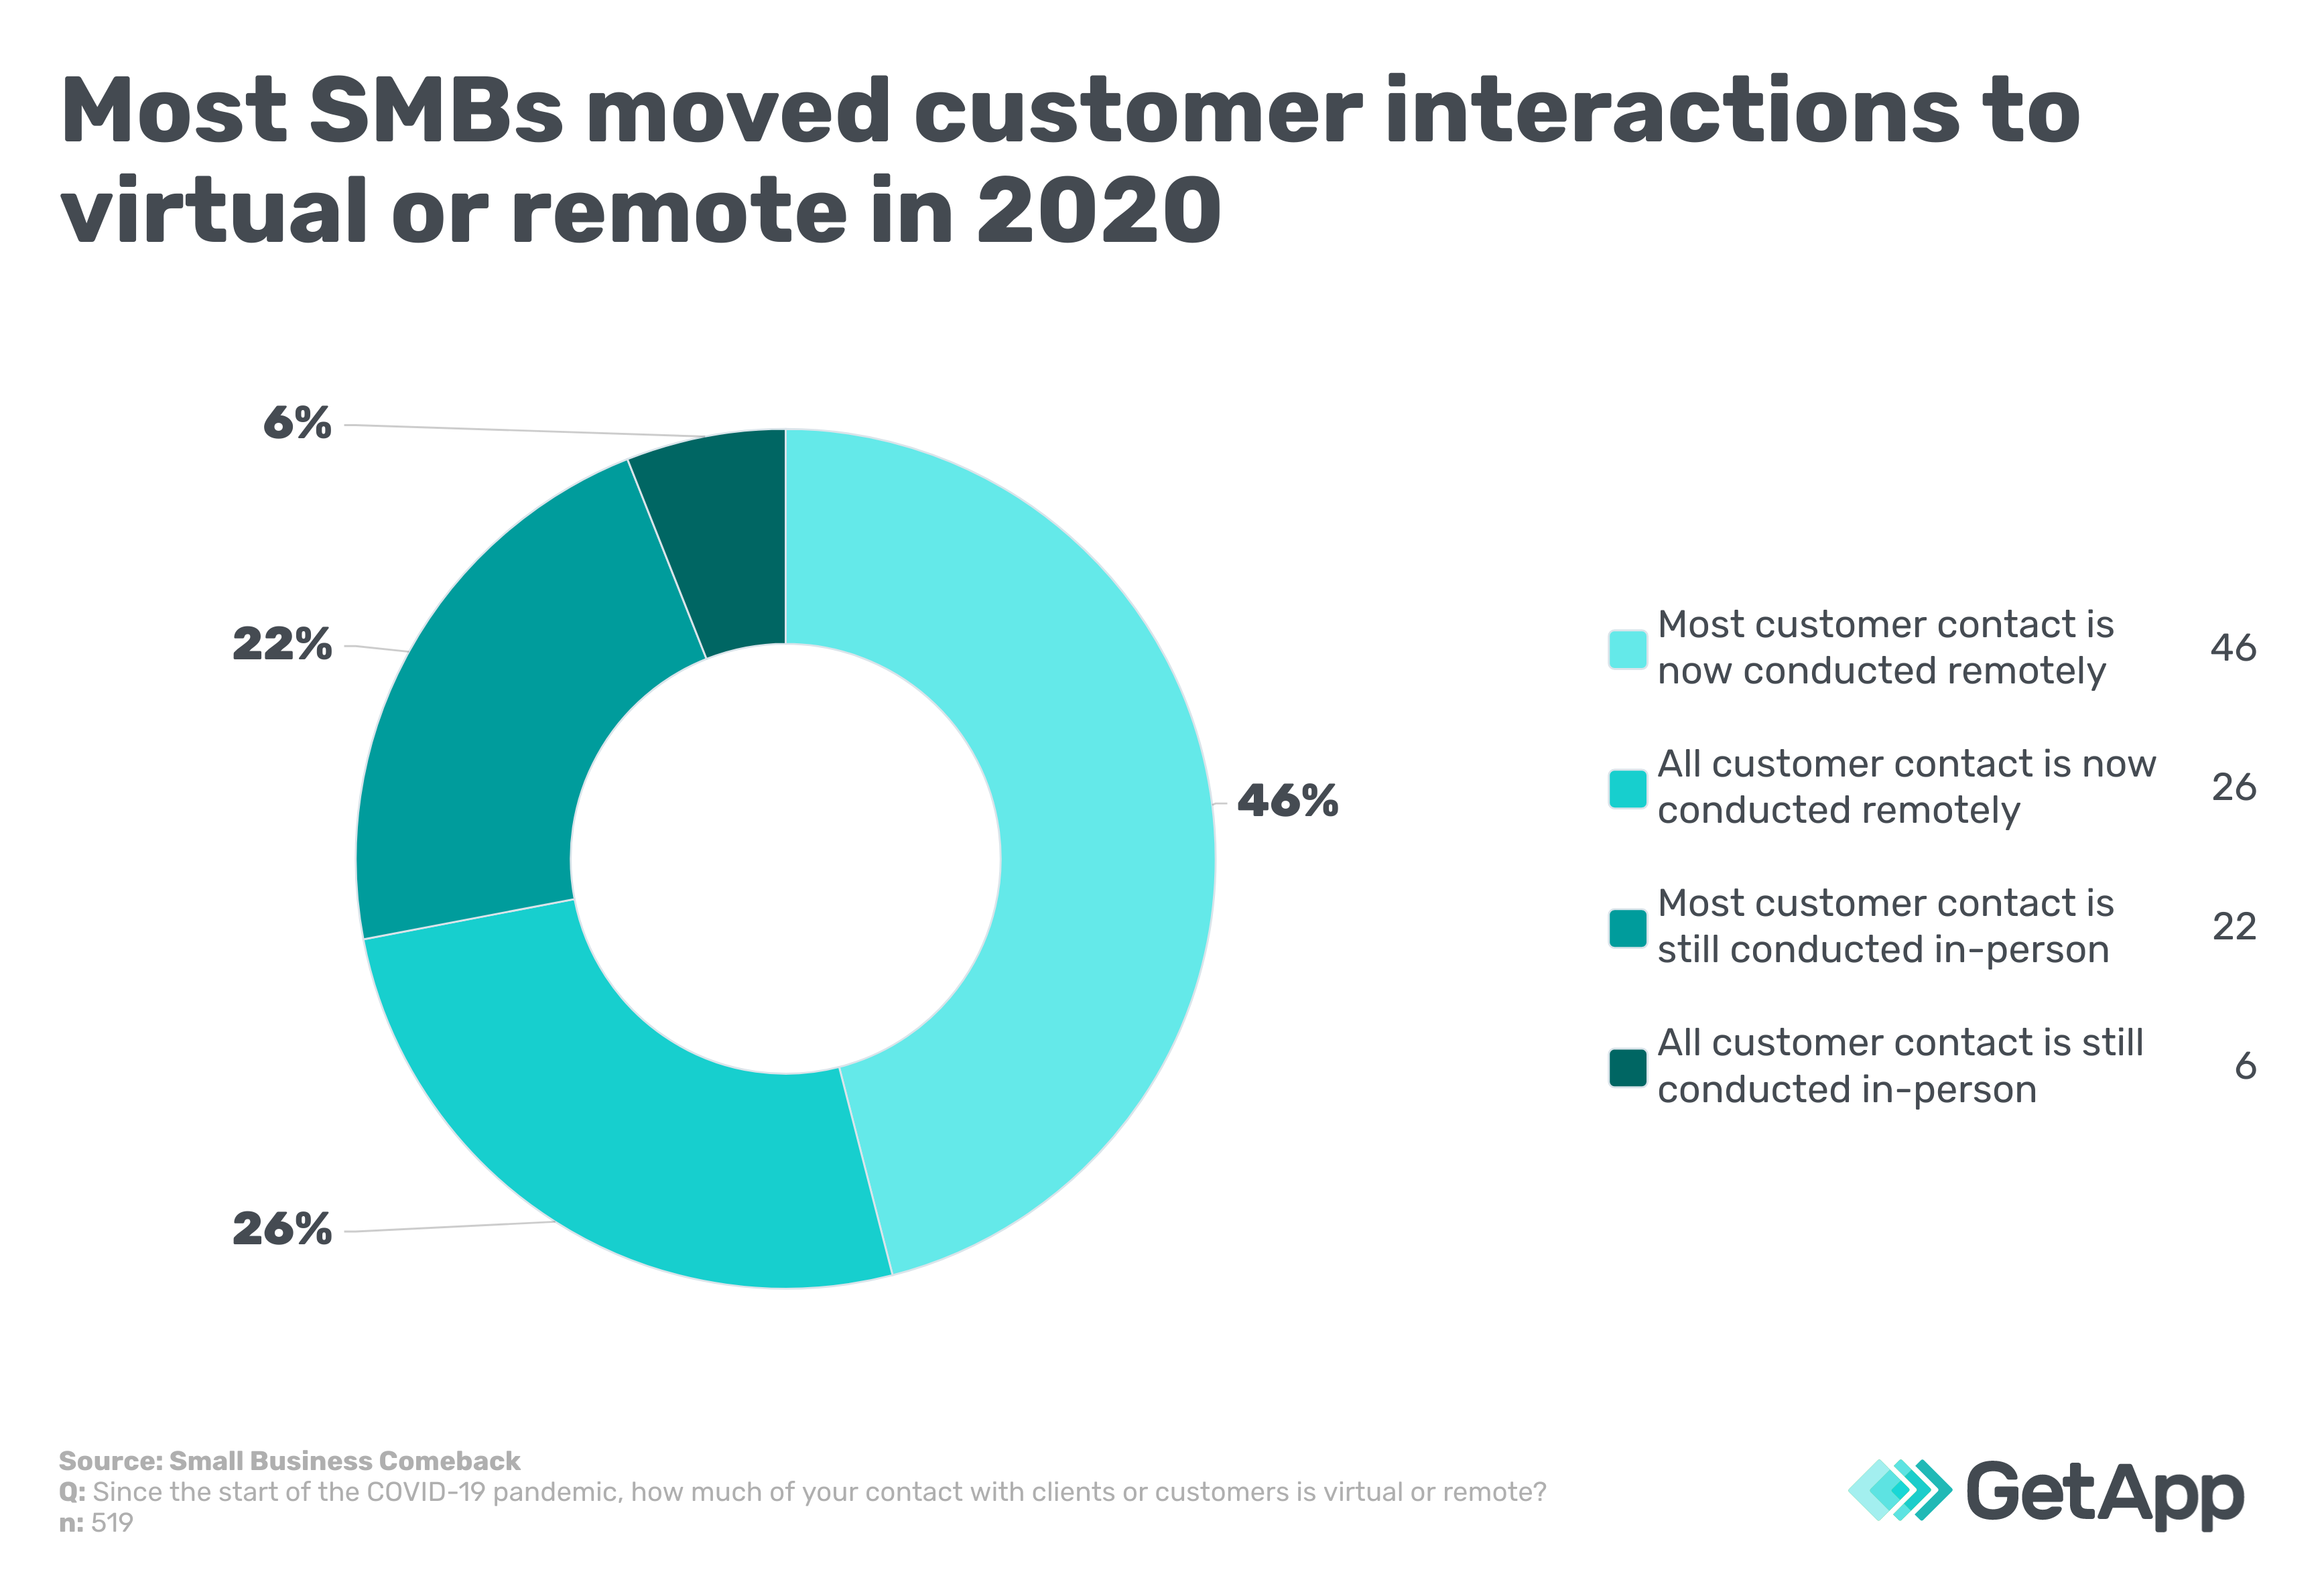 Most SMBs moved customer interactions to virtual or remote in 2020 graph